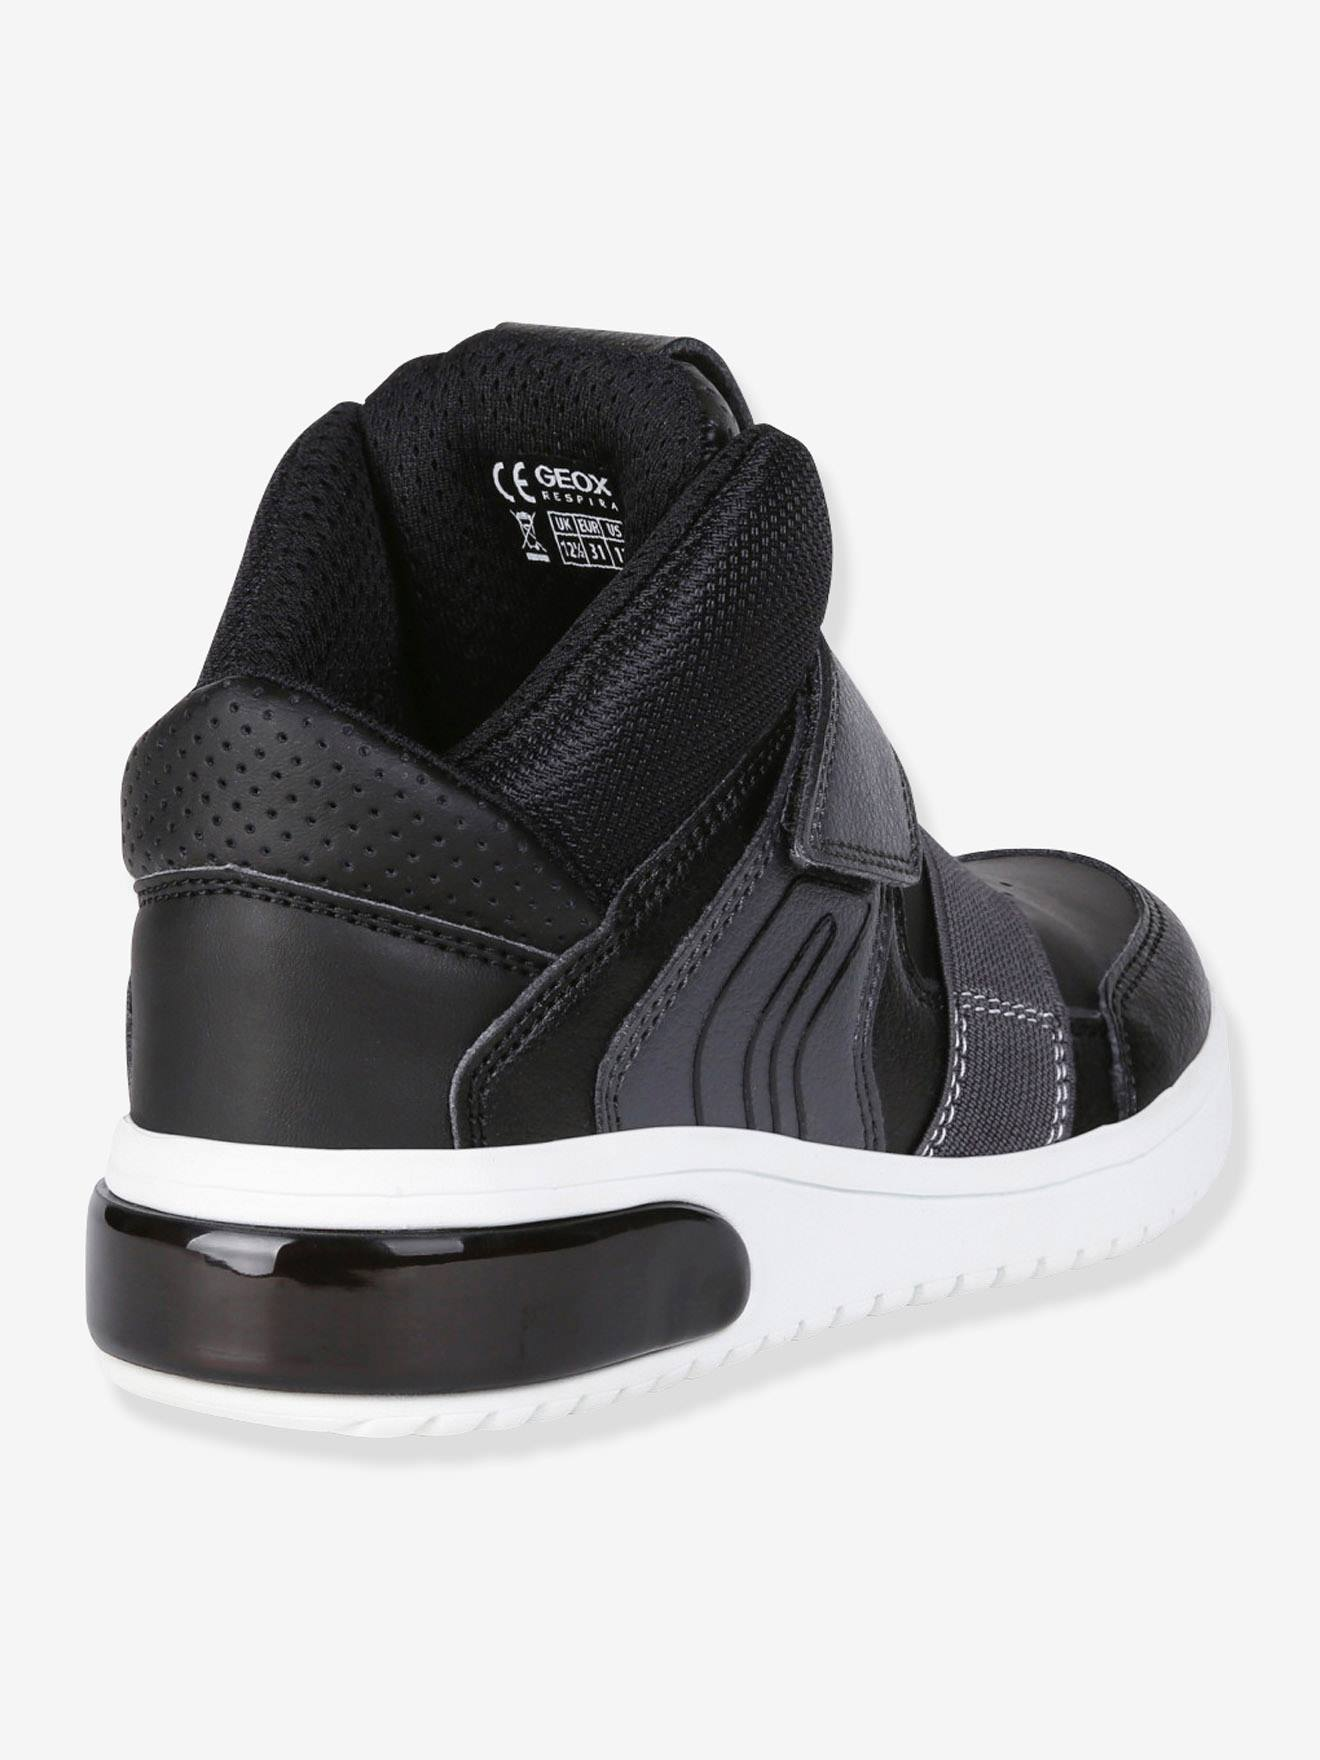 Geox® Noir High Geox Boy Garçon Xled Mid Baskets qwFR77